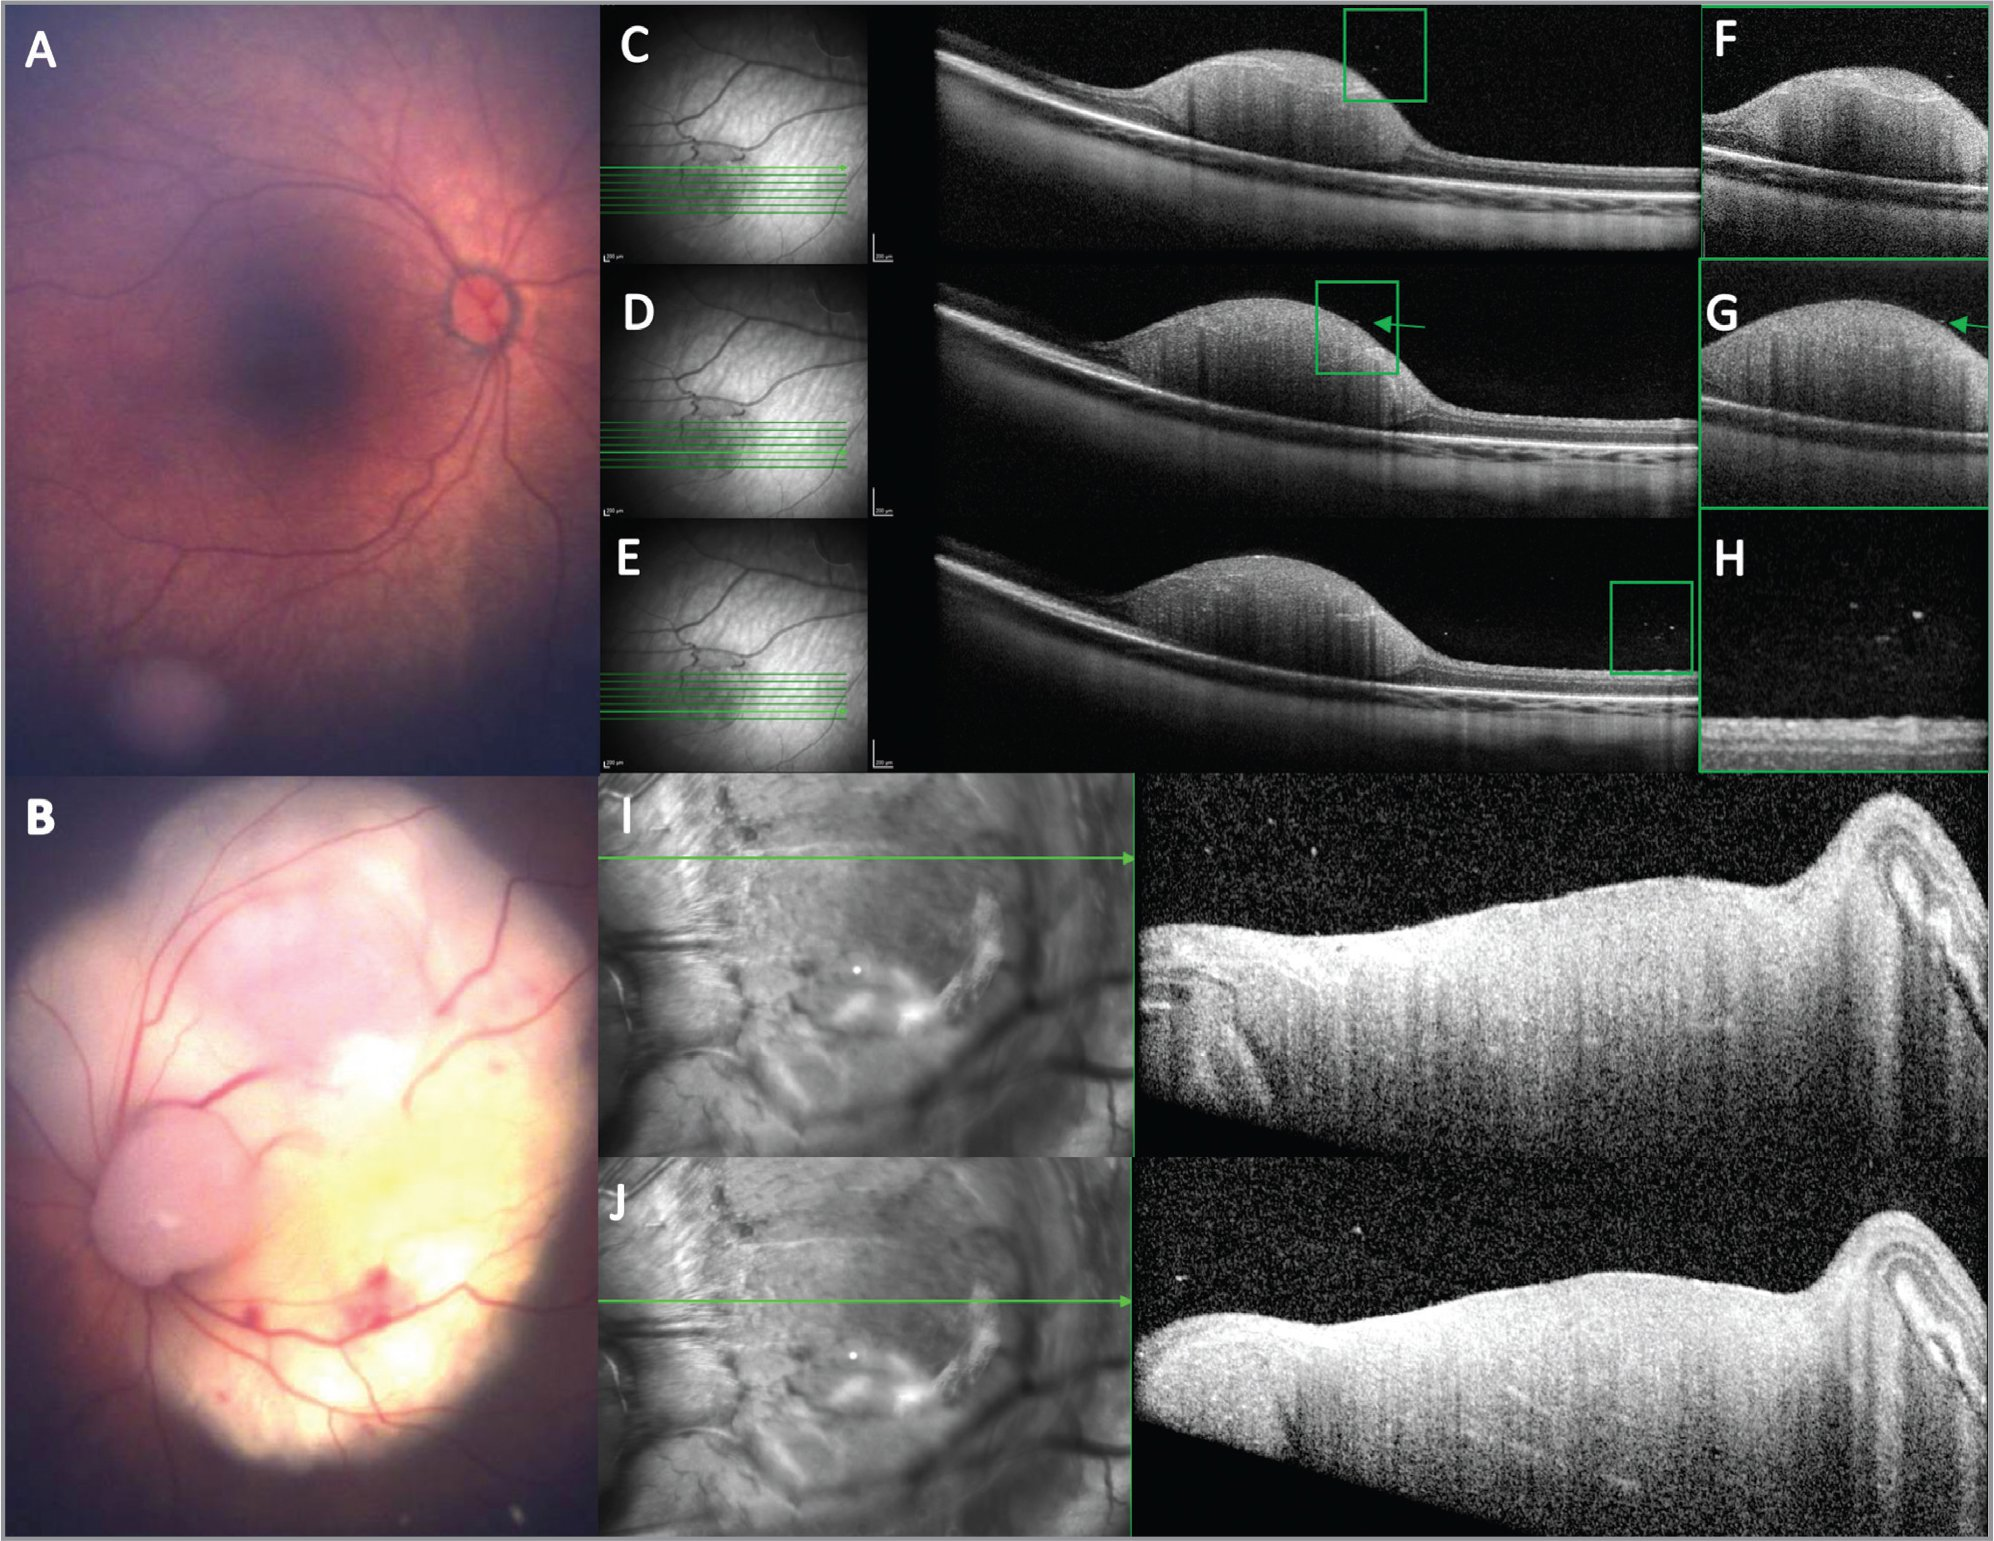 (A) Color photo of right eye with Group A retinoblastoma. (B) Color photo of left eye with Group C retinoblastoma with a large macular tumor. (C, D, E) Optical coherence tomography (OCT) of the right eye tumor shows small hyperreflective opacities (green boxes highlight areas of opacities). Note the proximity of the opacity to the tumor surface in figure D. (F, G, H) Higher magnification images of the corresponding opacities in C, D, and E. (I, J) Similar opacities were seen in the left eye on OCT. Spectral-domain OCT images were captured with the following parameters: 30° X 5° 7-line scan with an axial resolution of 3.87 μm/pixel for Figures C, D, E and 30° X 25° 61-line high-speed volume scan with an axial resolution of 3.87 μm/pixel for Figures I and J.